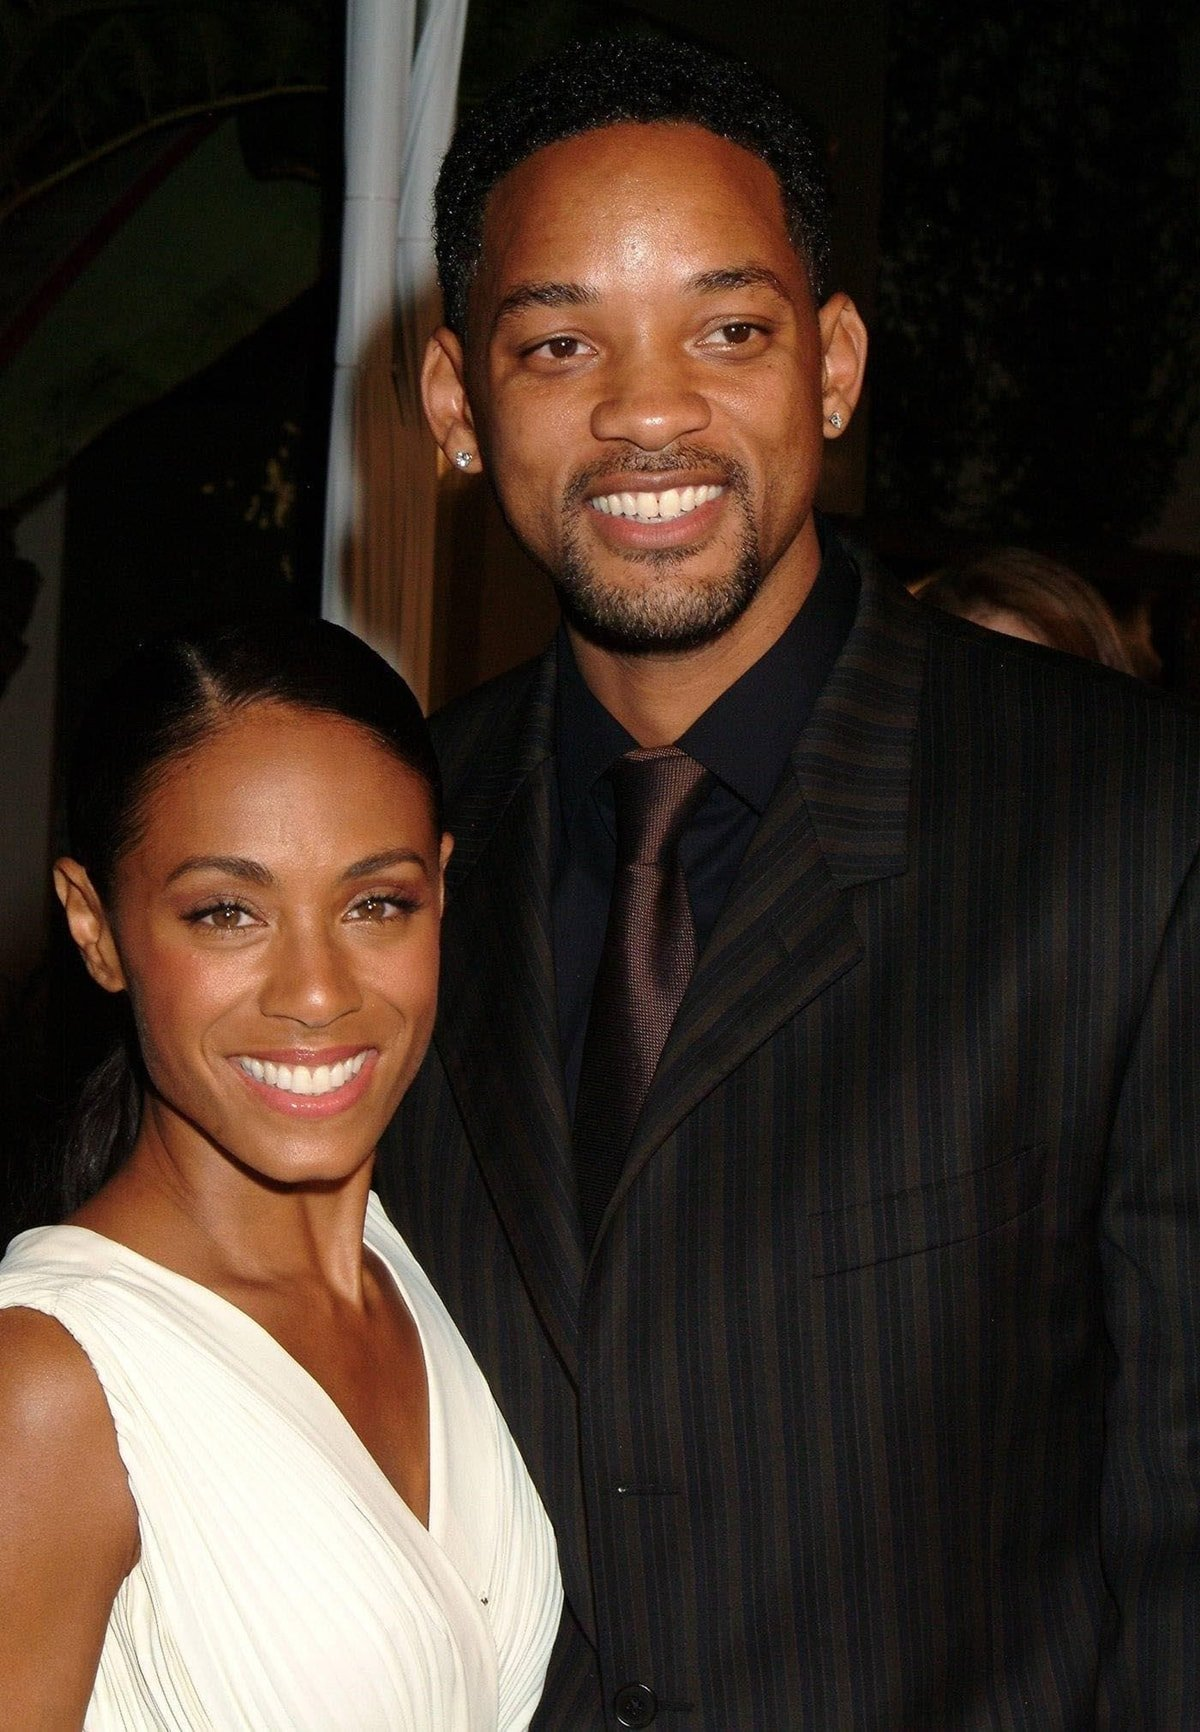 Will Smith met Jada Pinkett Smith on the set of Fresh Prince of Bel-Air in 1990 and married in 1997